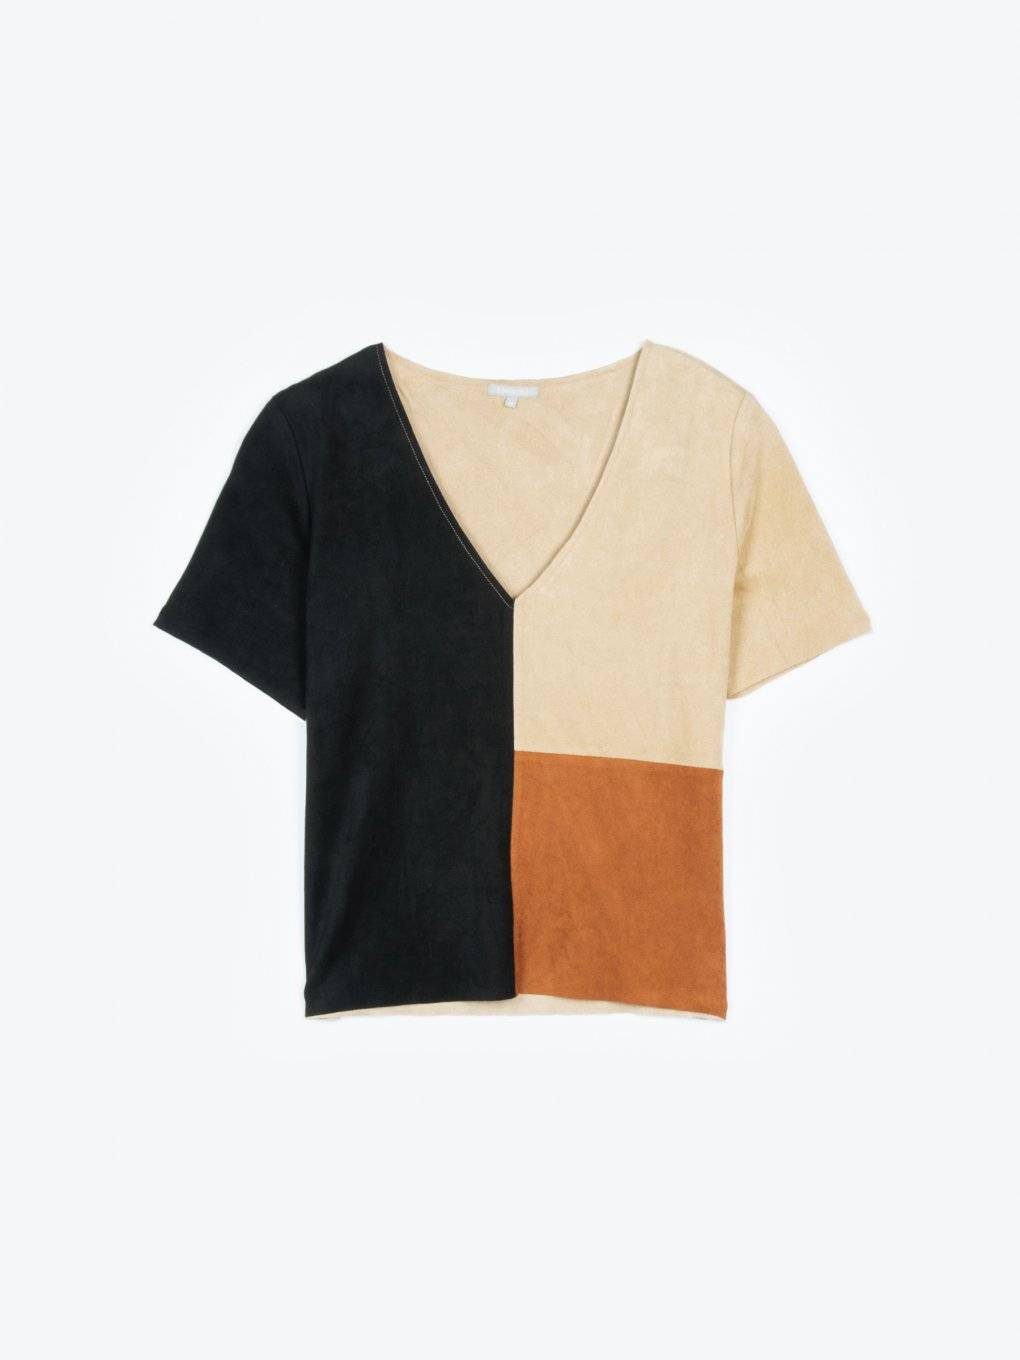 Faux suede paneled top with v-neck